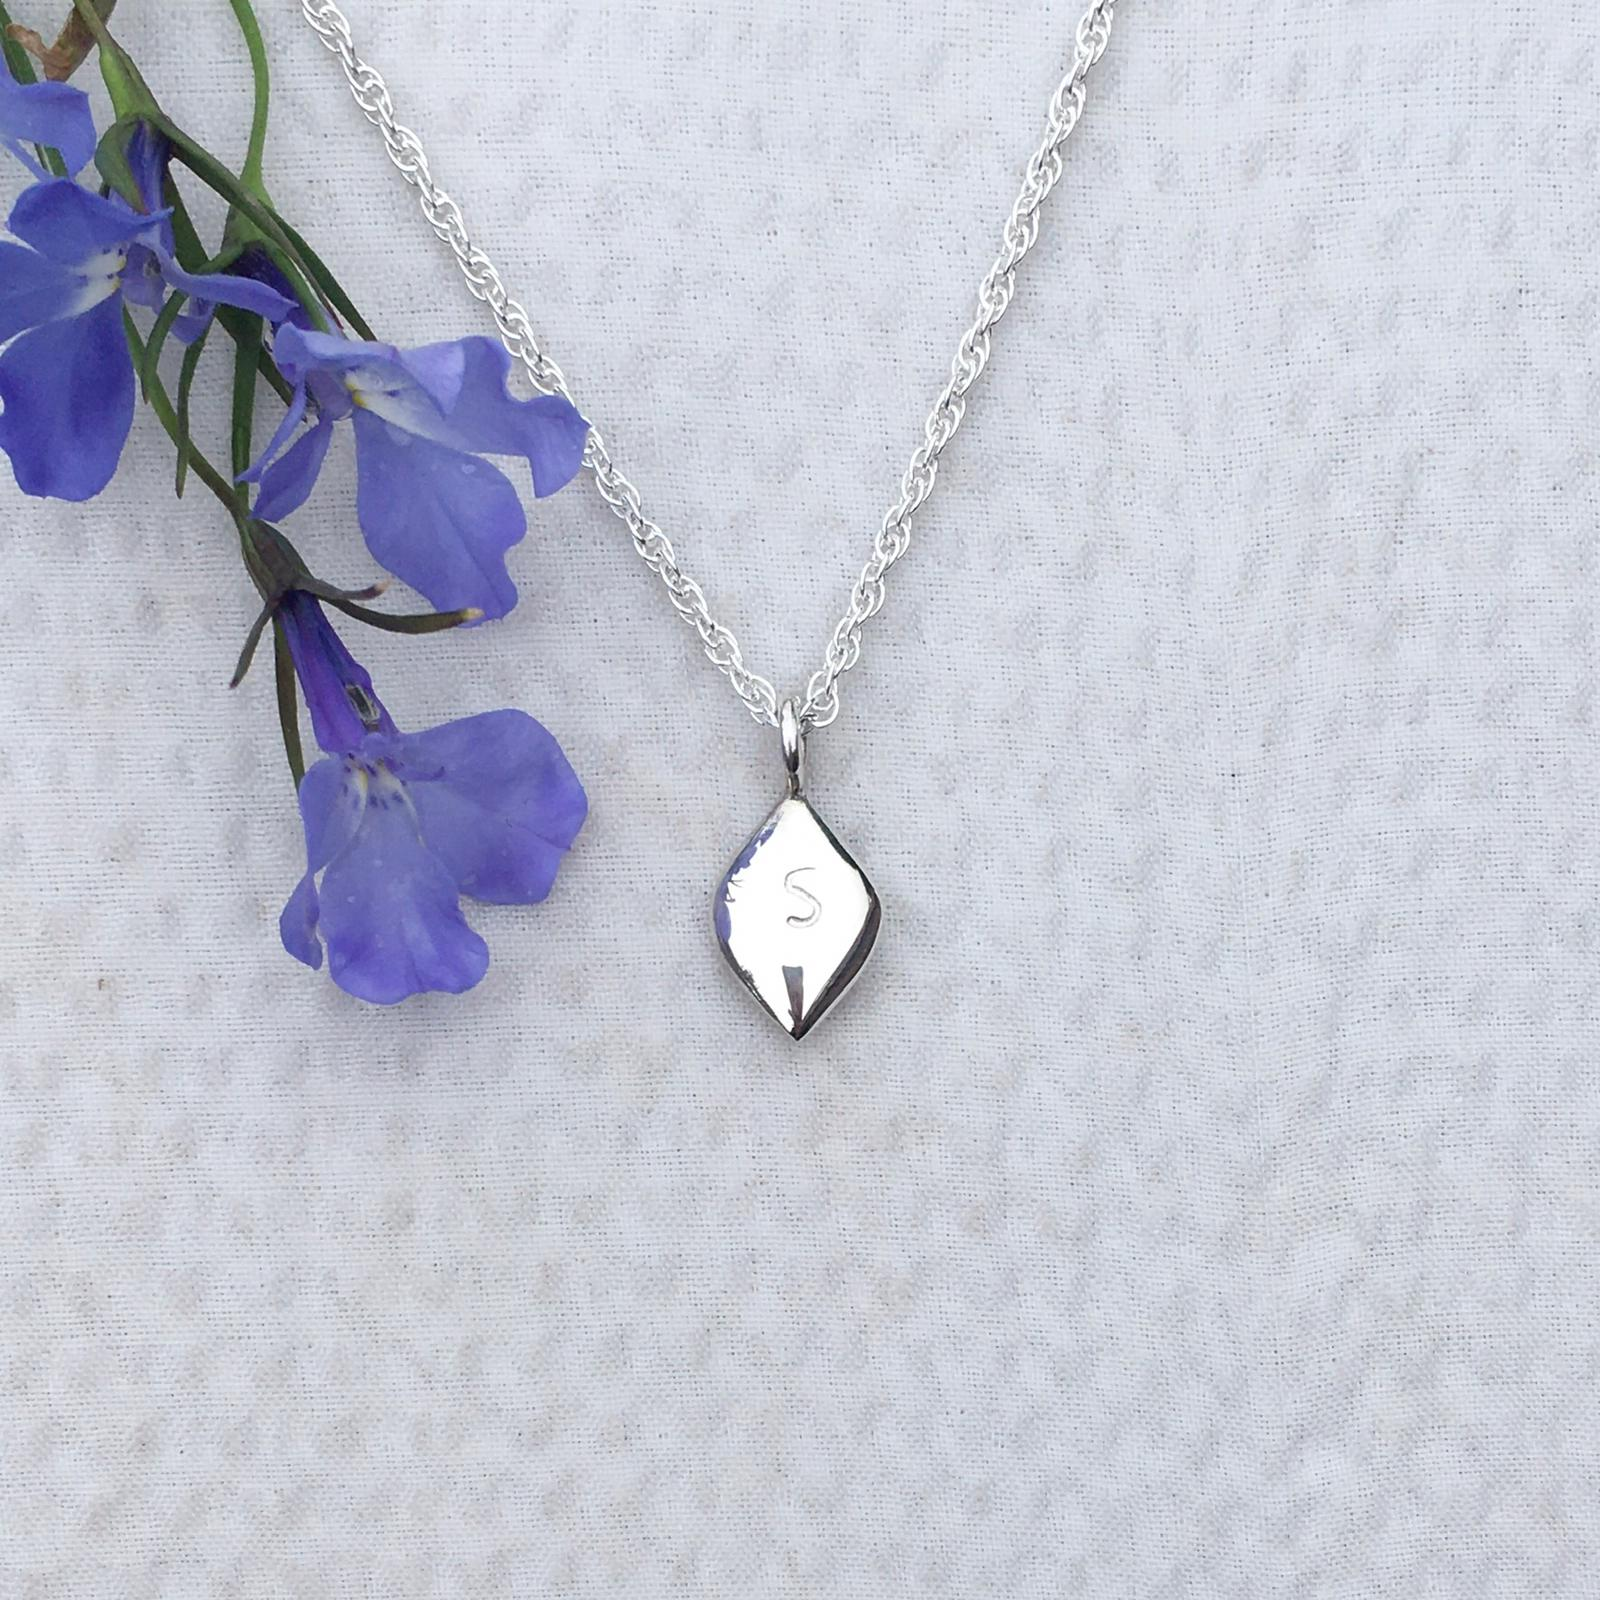 Solid Silver Curve Necklace